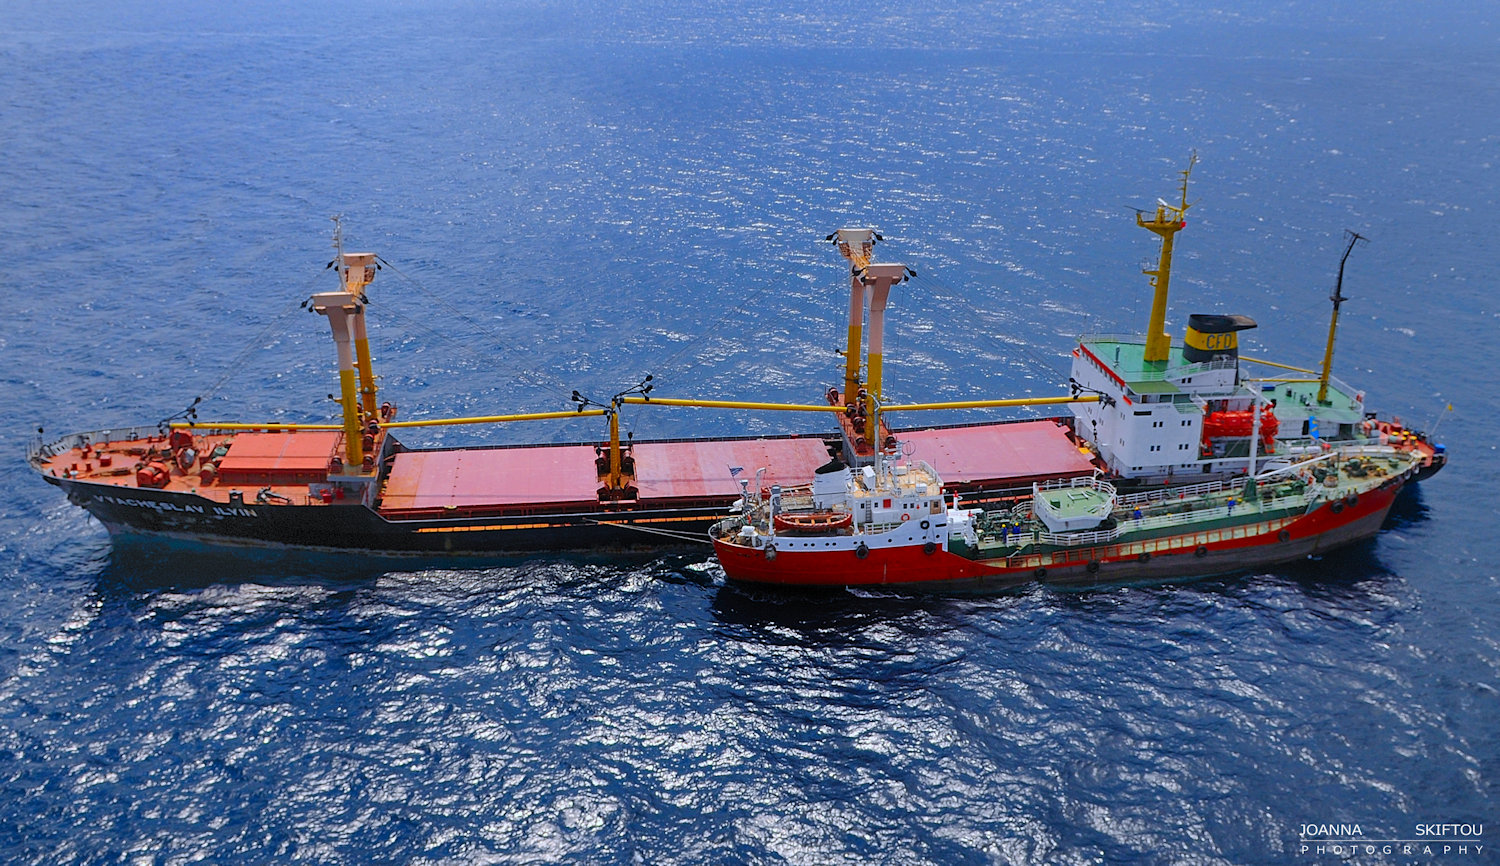 Aerial bunkering photography by Joanna Skiftou